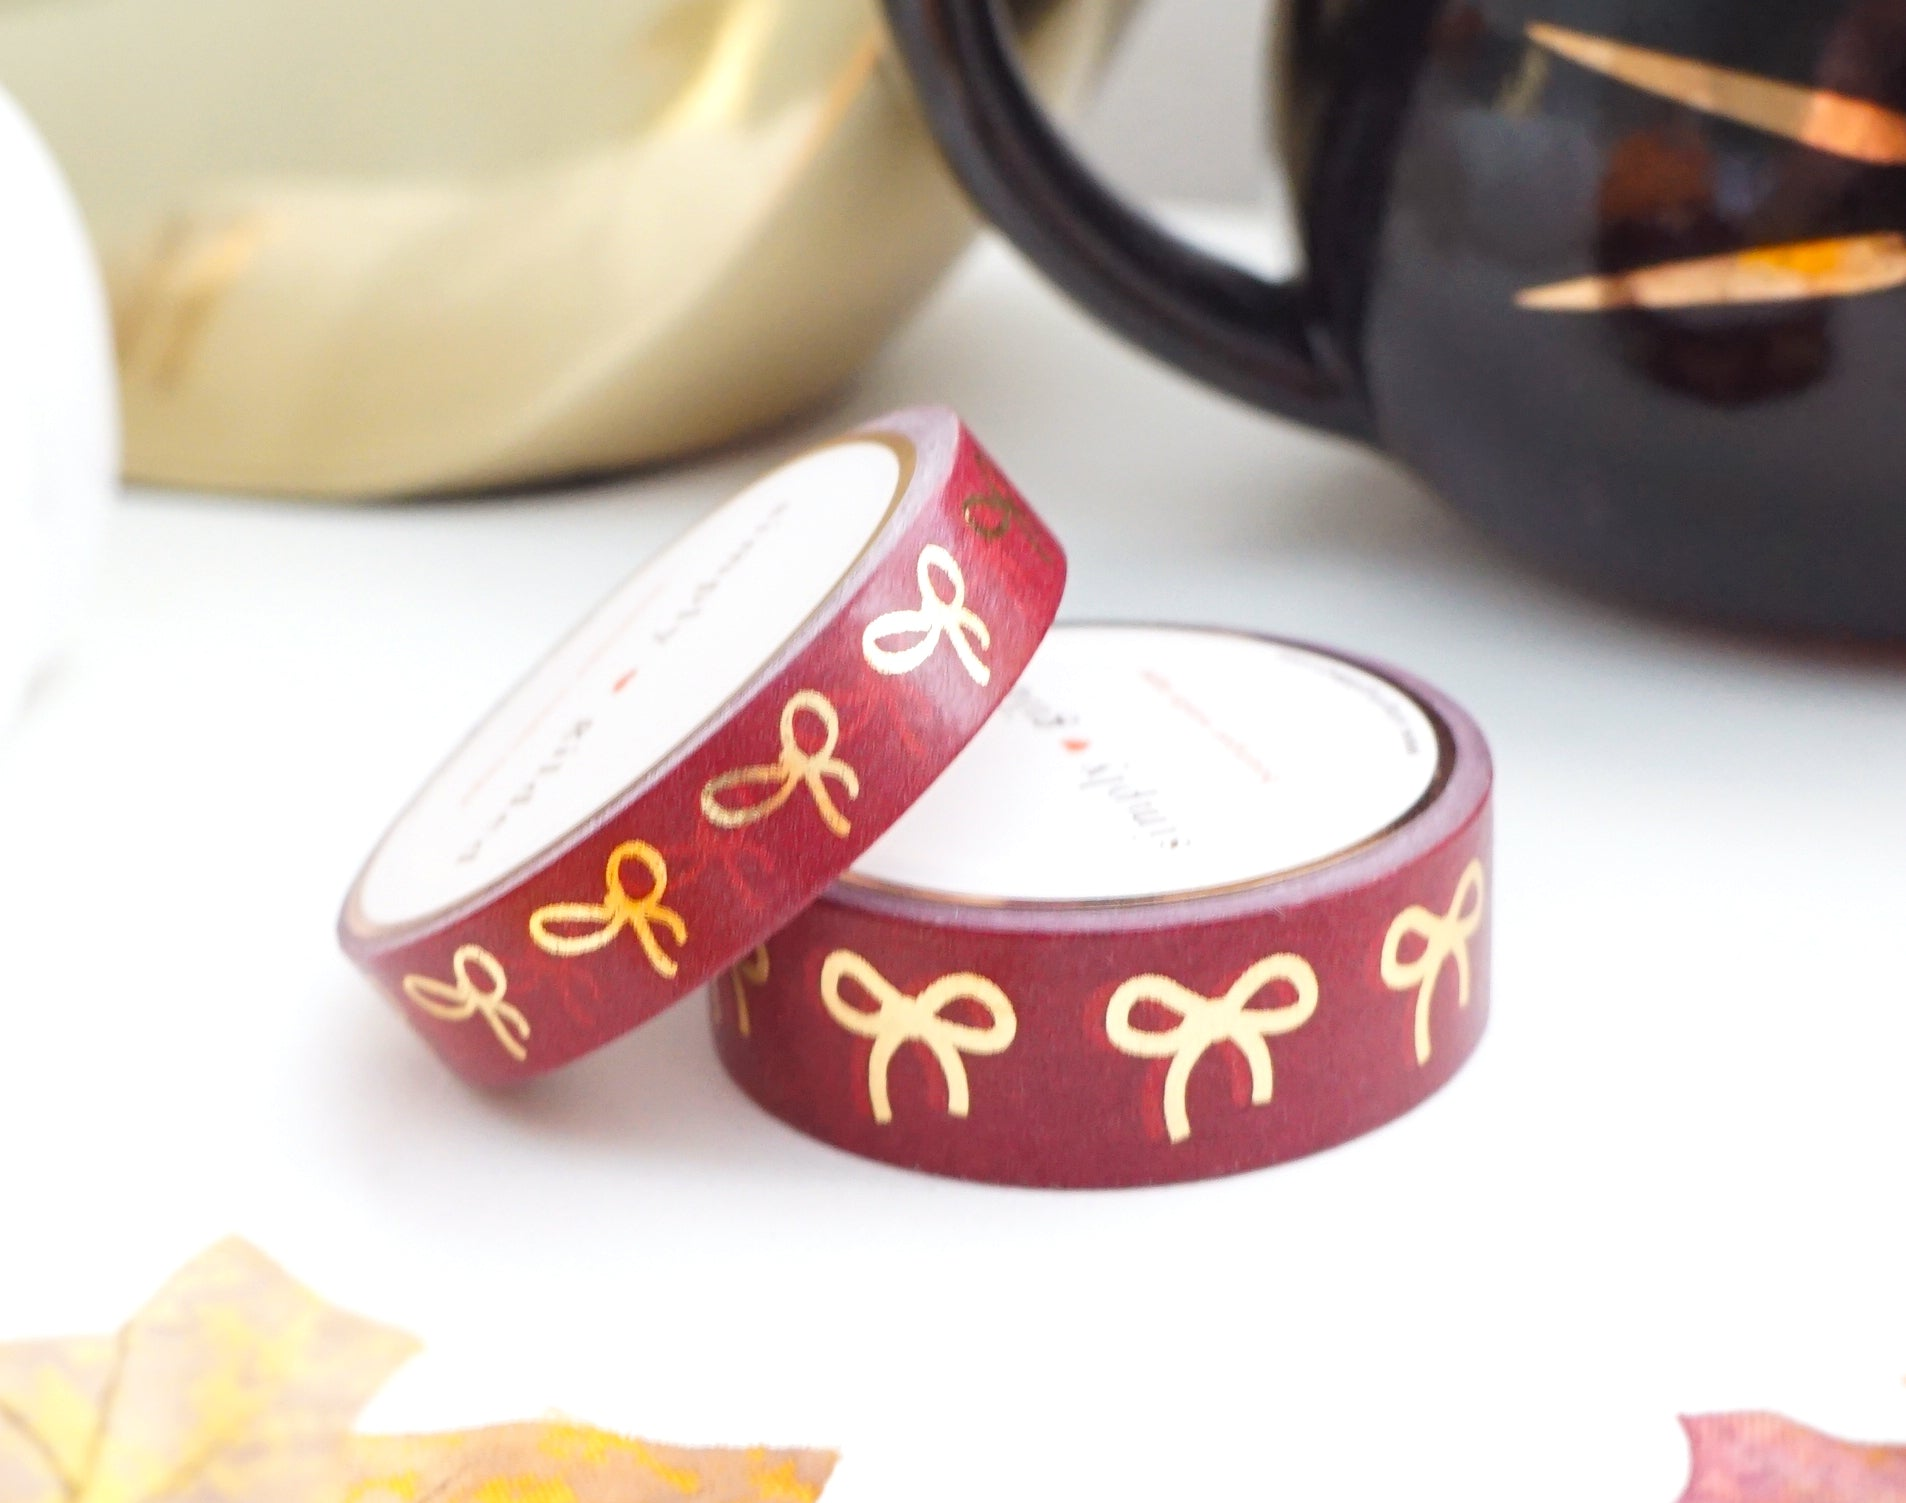 WASHI TAPE 15/10mm bow set BRAVE BURGUNDY + gold foil washi tape (October 2019 Release)